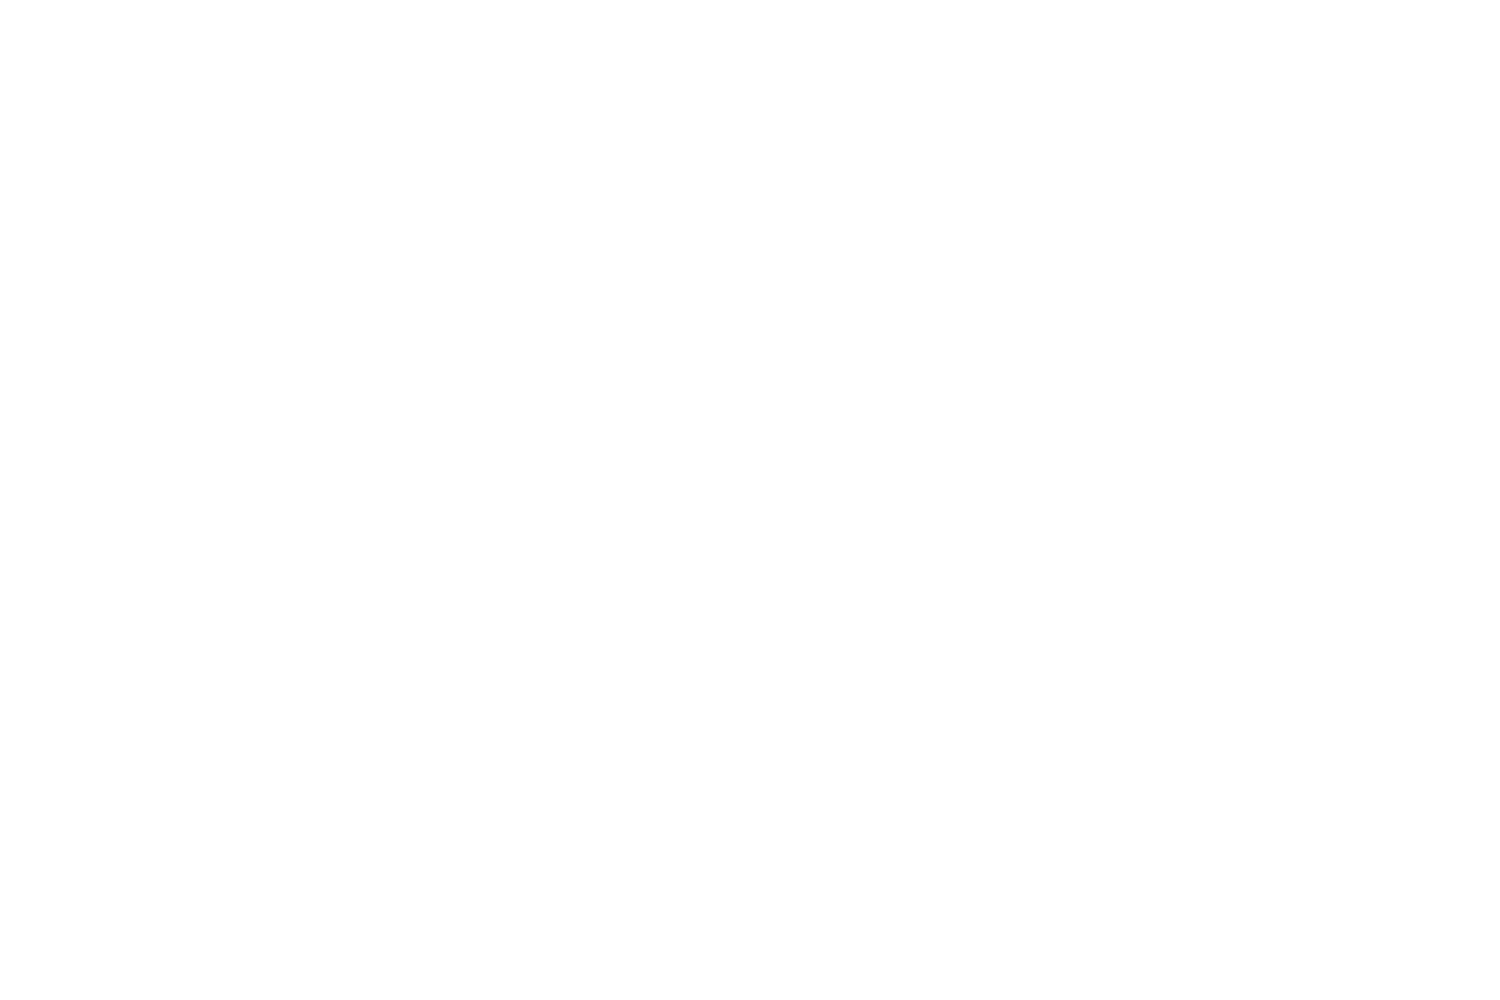 St Germain Bistro & Cafe